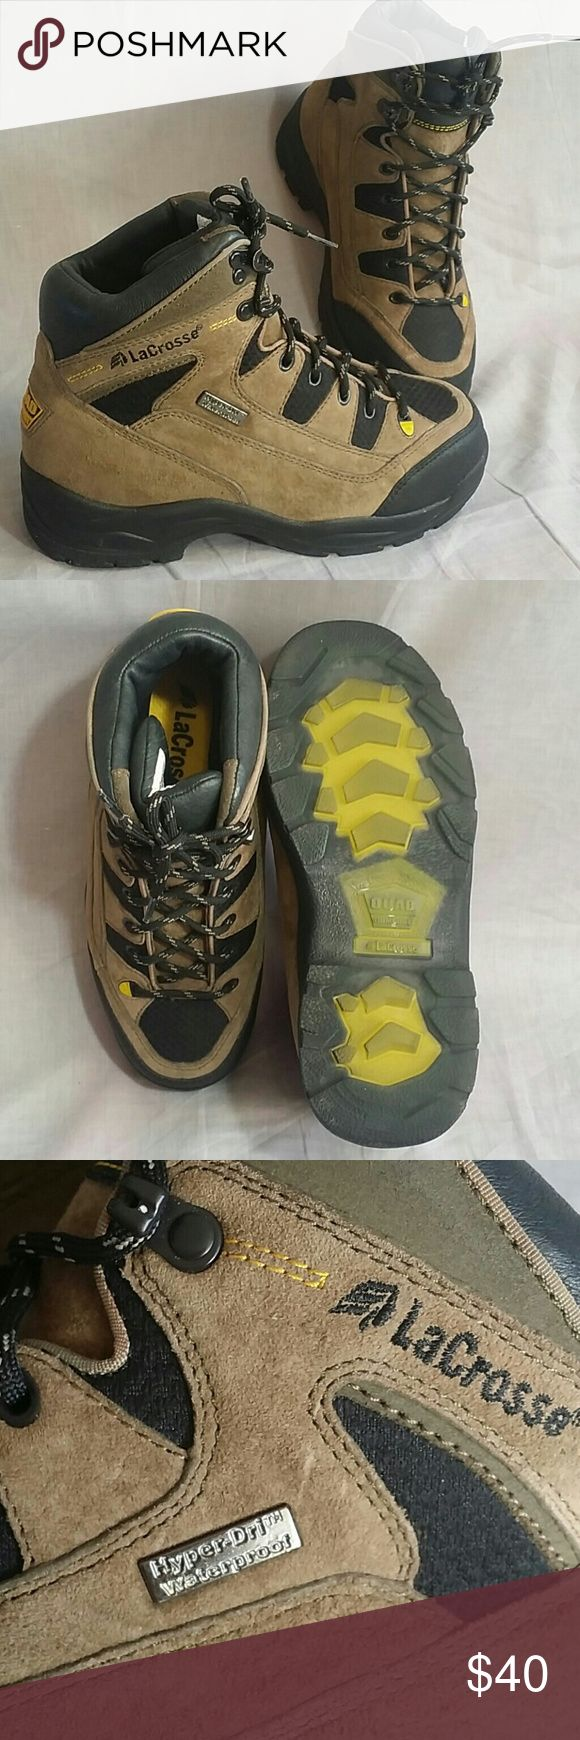 LaCrosse work Boots Waterproof safety toe 7 M Women's LaCrosse Work Boots Waterproof Hyper-Dri  QUAD COMFORT, Safety Toe Size 7 M Lace up Leather Item is in a good condition. LaCrosse Shoes Combat & Moto Boots